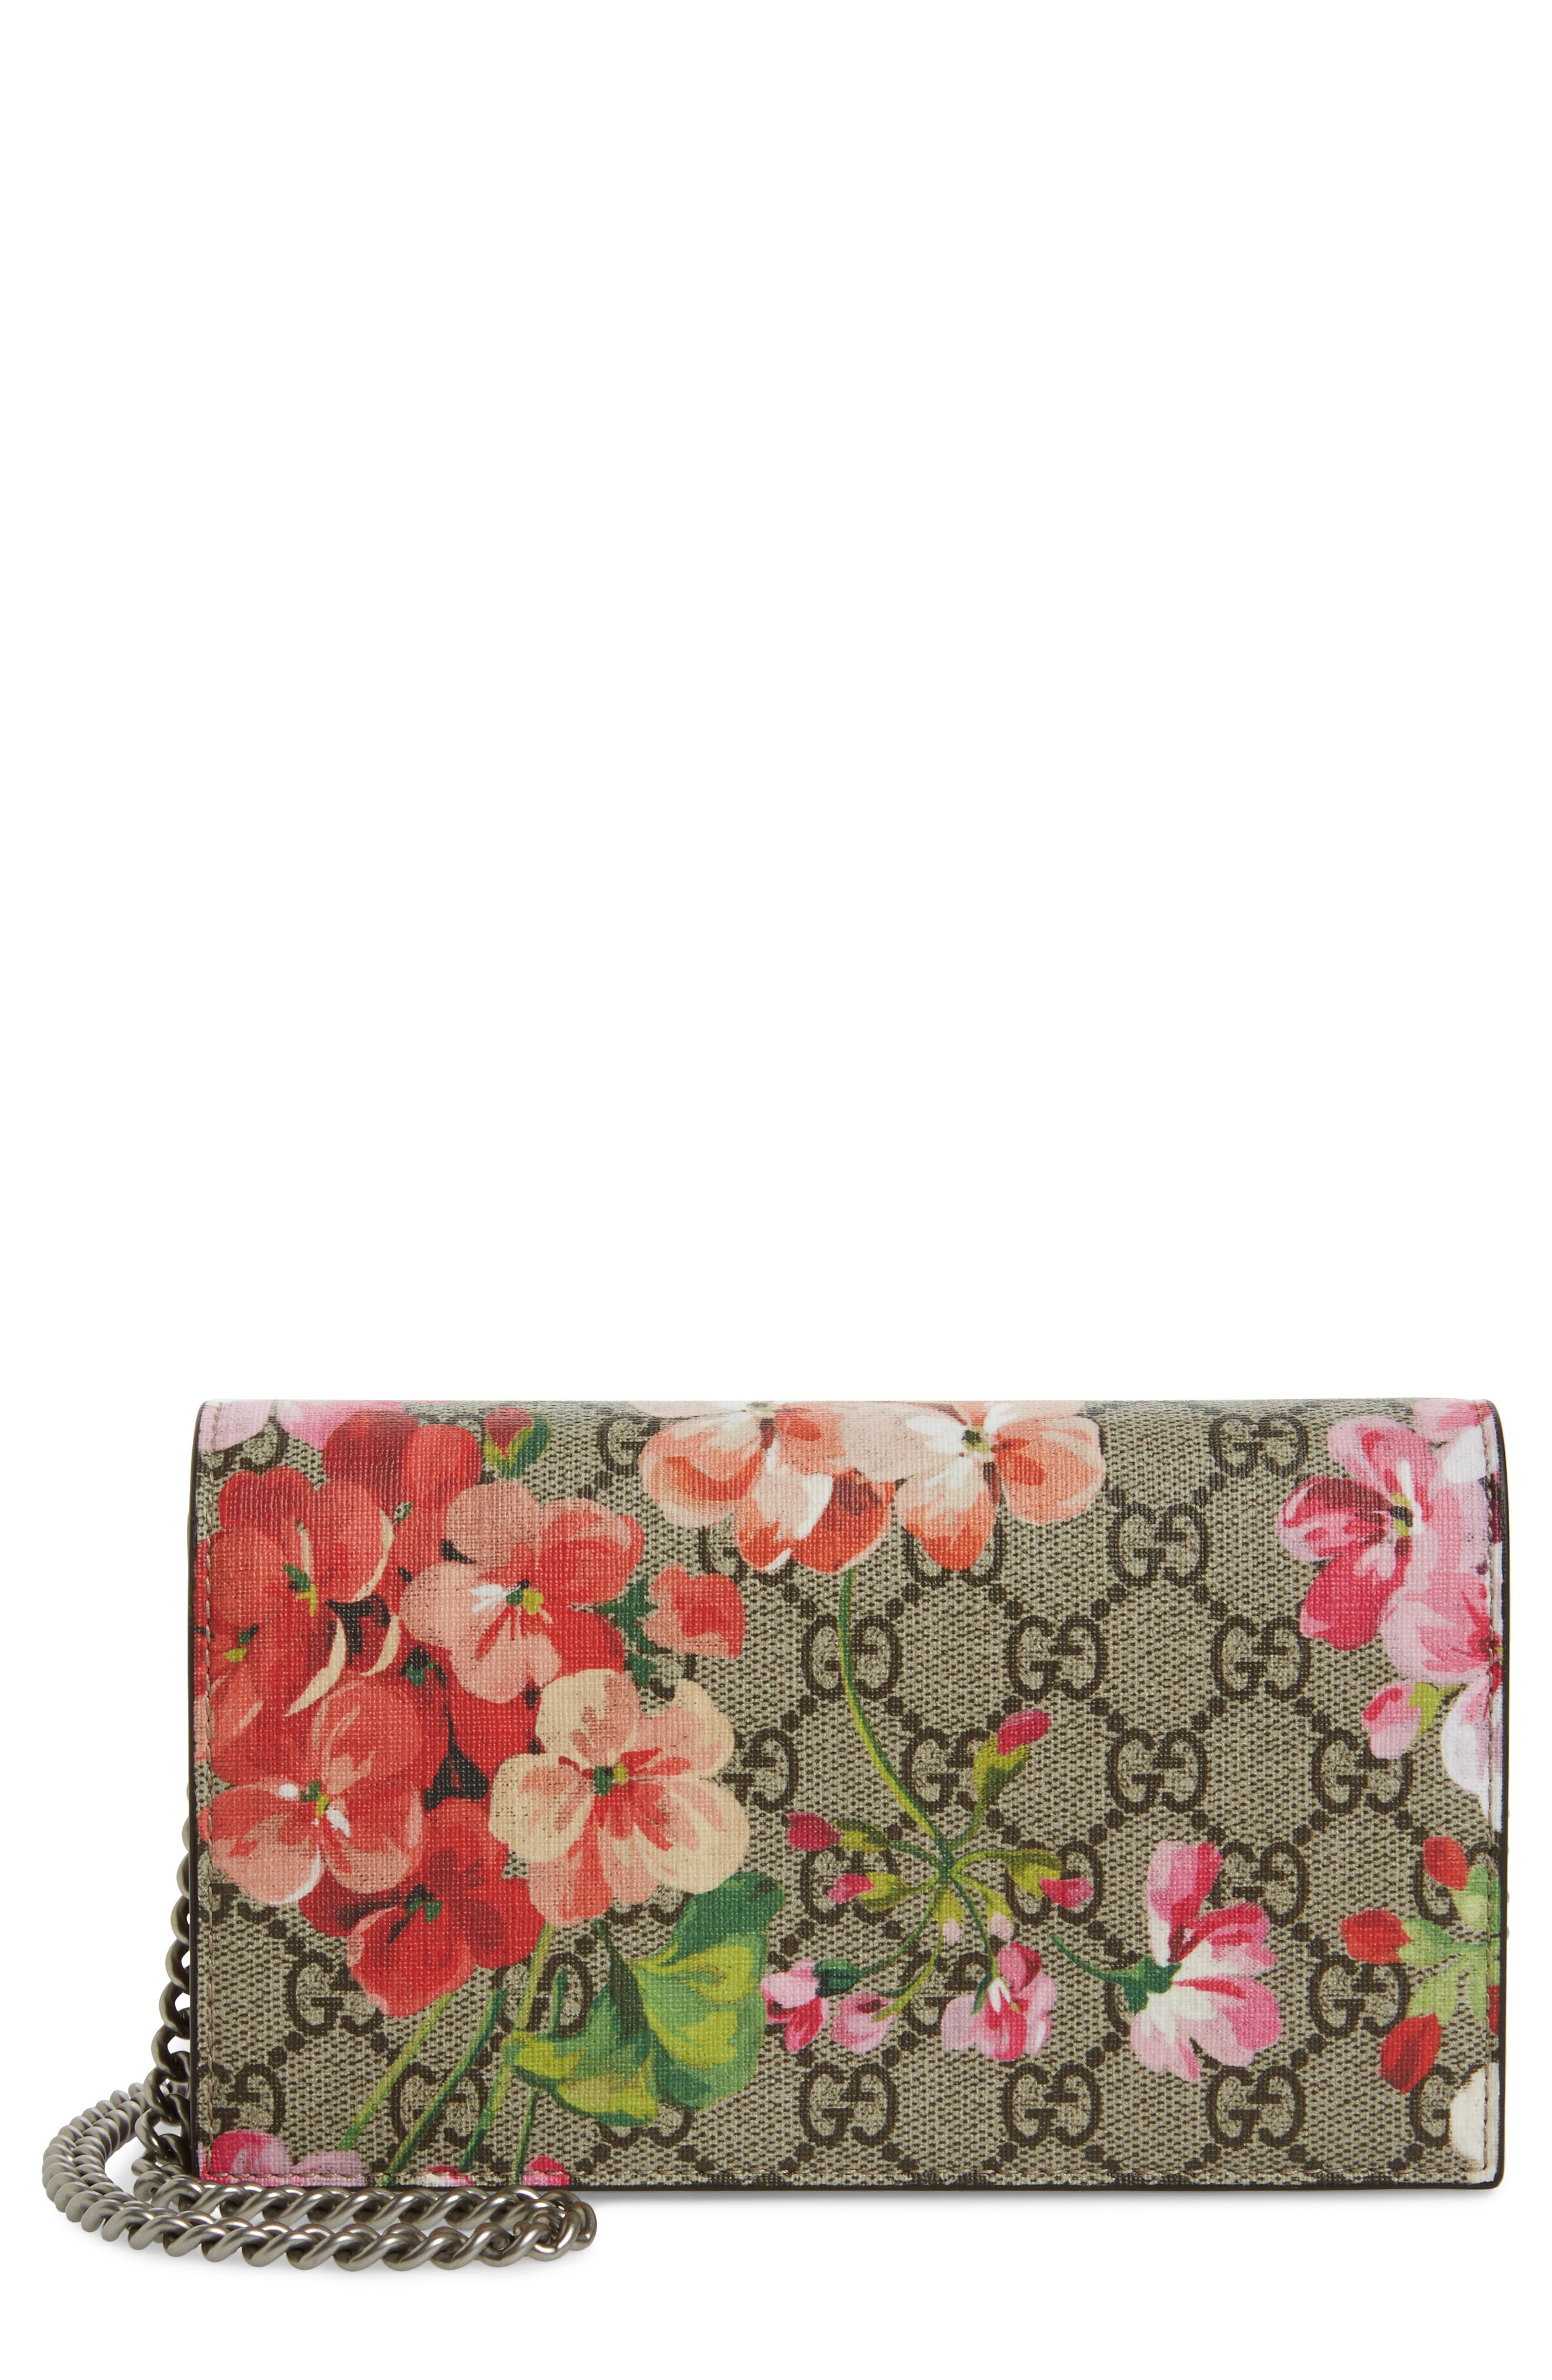 GG Blooms Supreme Canvas Wallet on a Chain,                             Main thumbnail 1, color,                             291